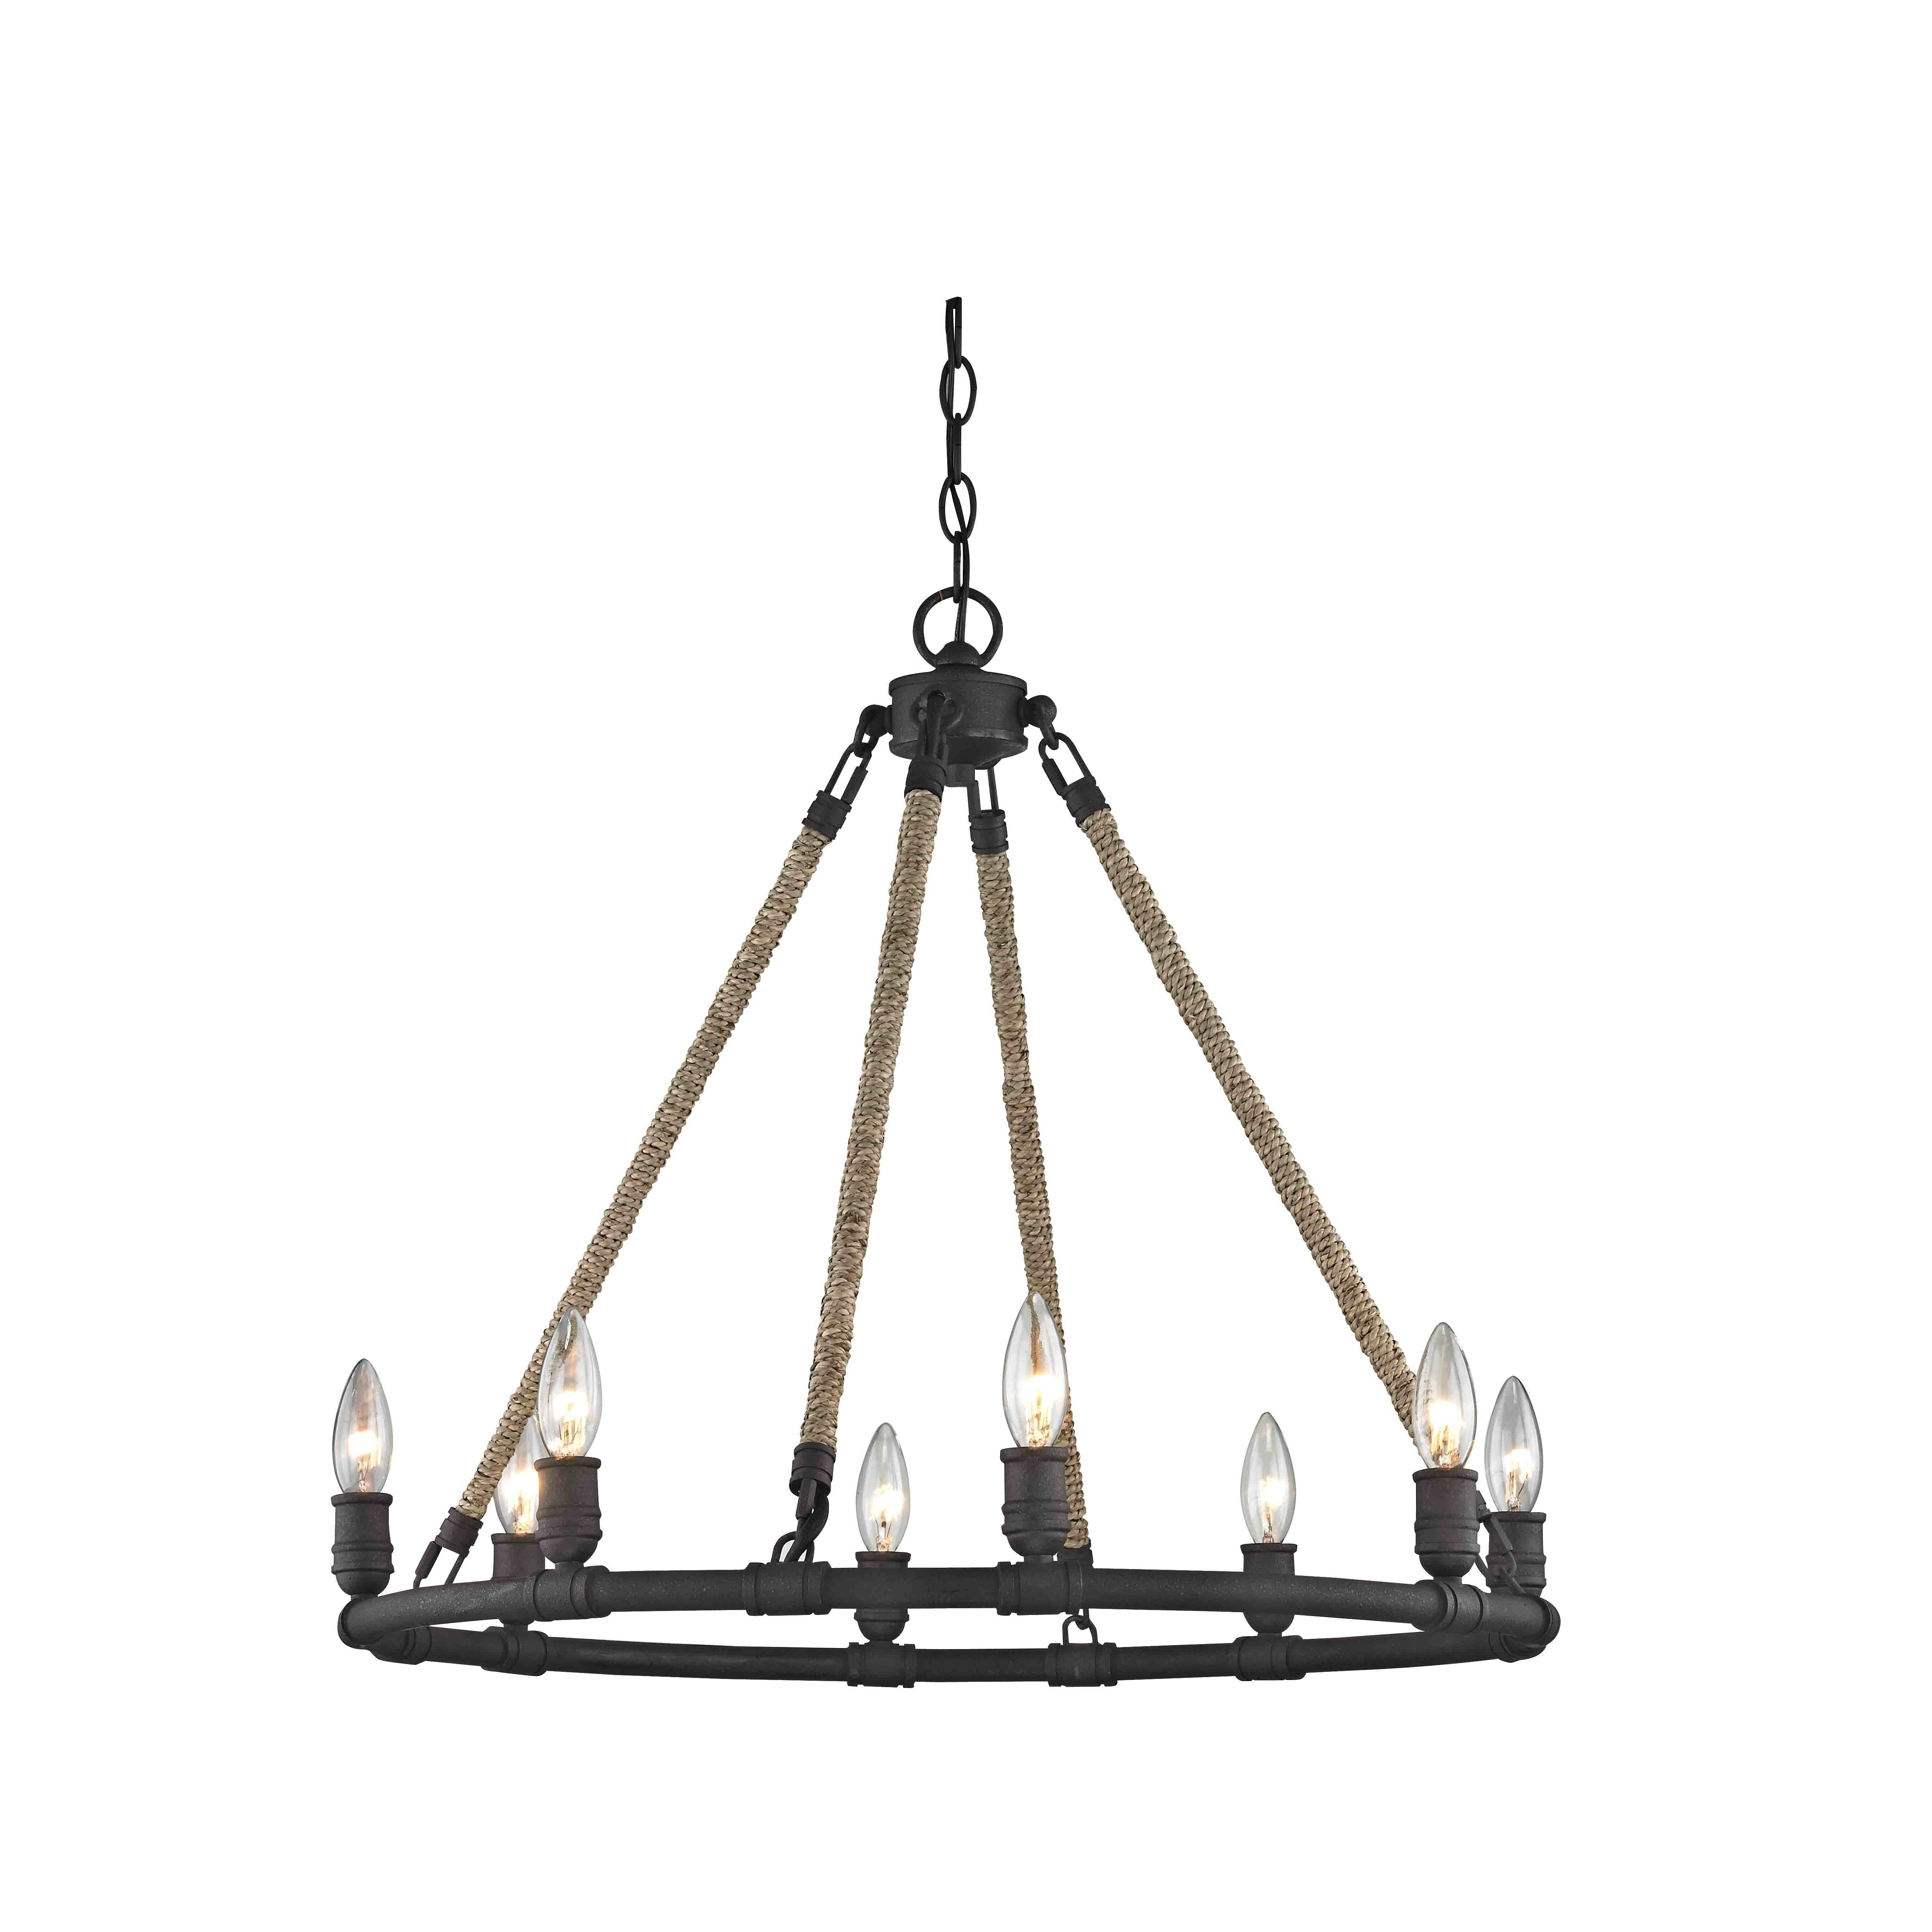 Breakwater Bay Martin 8 Light Candle Style Chandelier Reviews Wayfair